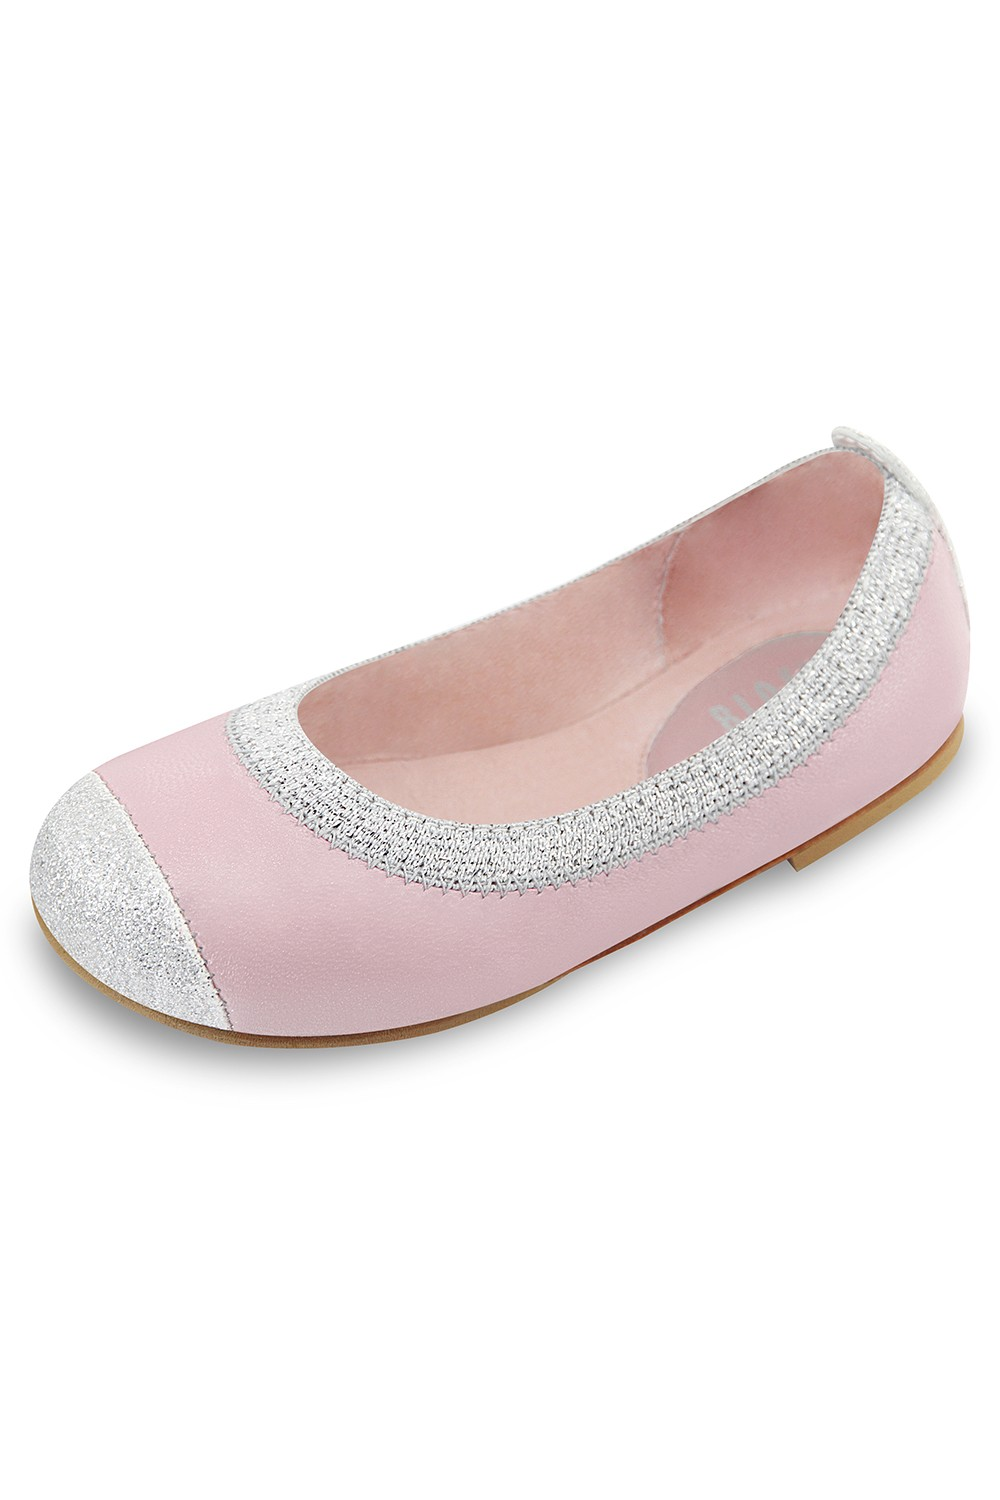 Crystelle - Kleinkind  Toddlers Fashion Shoes